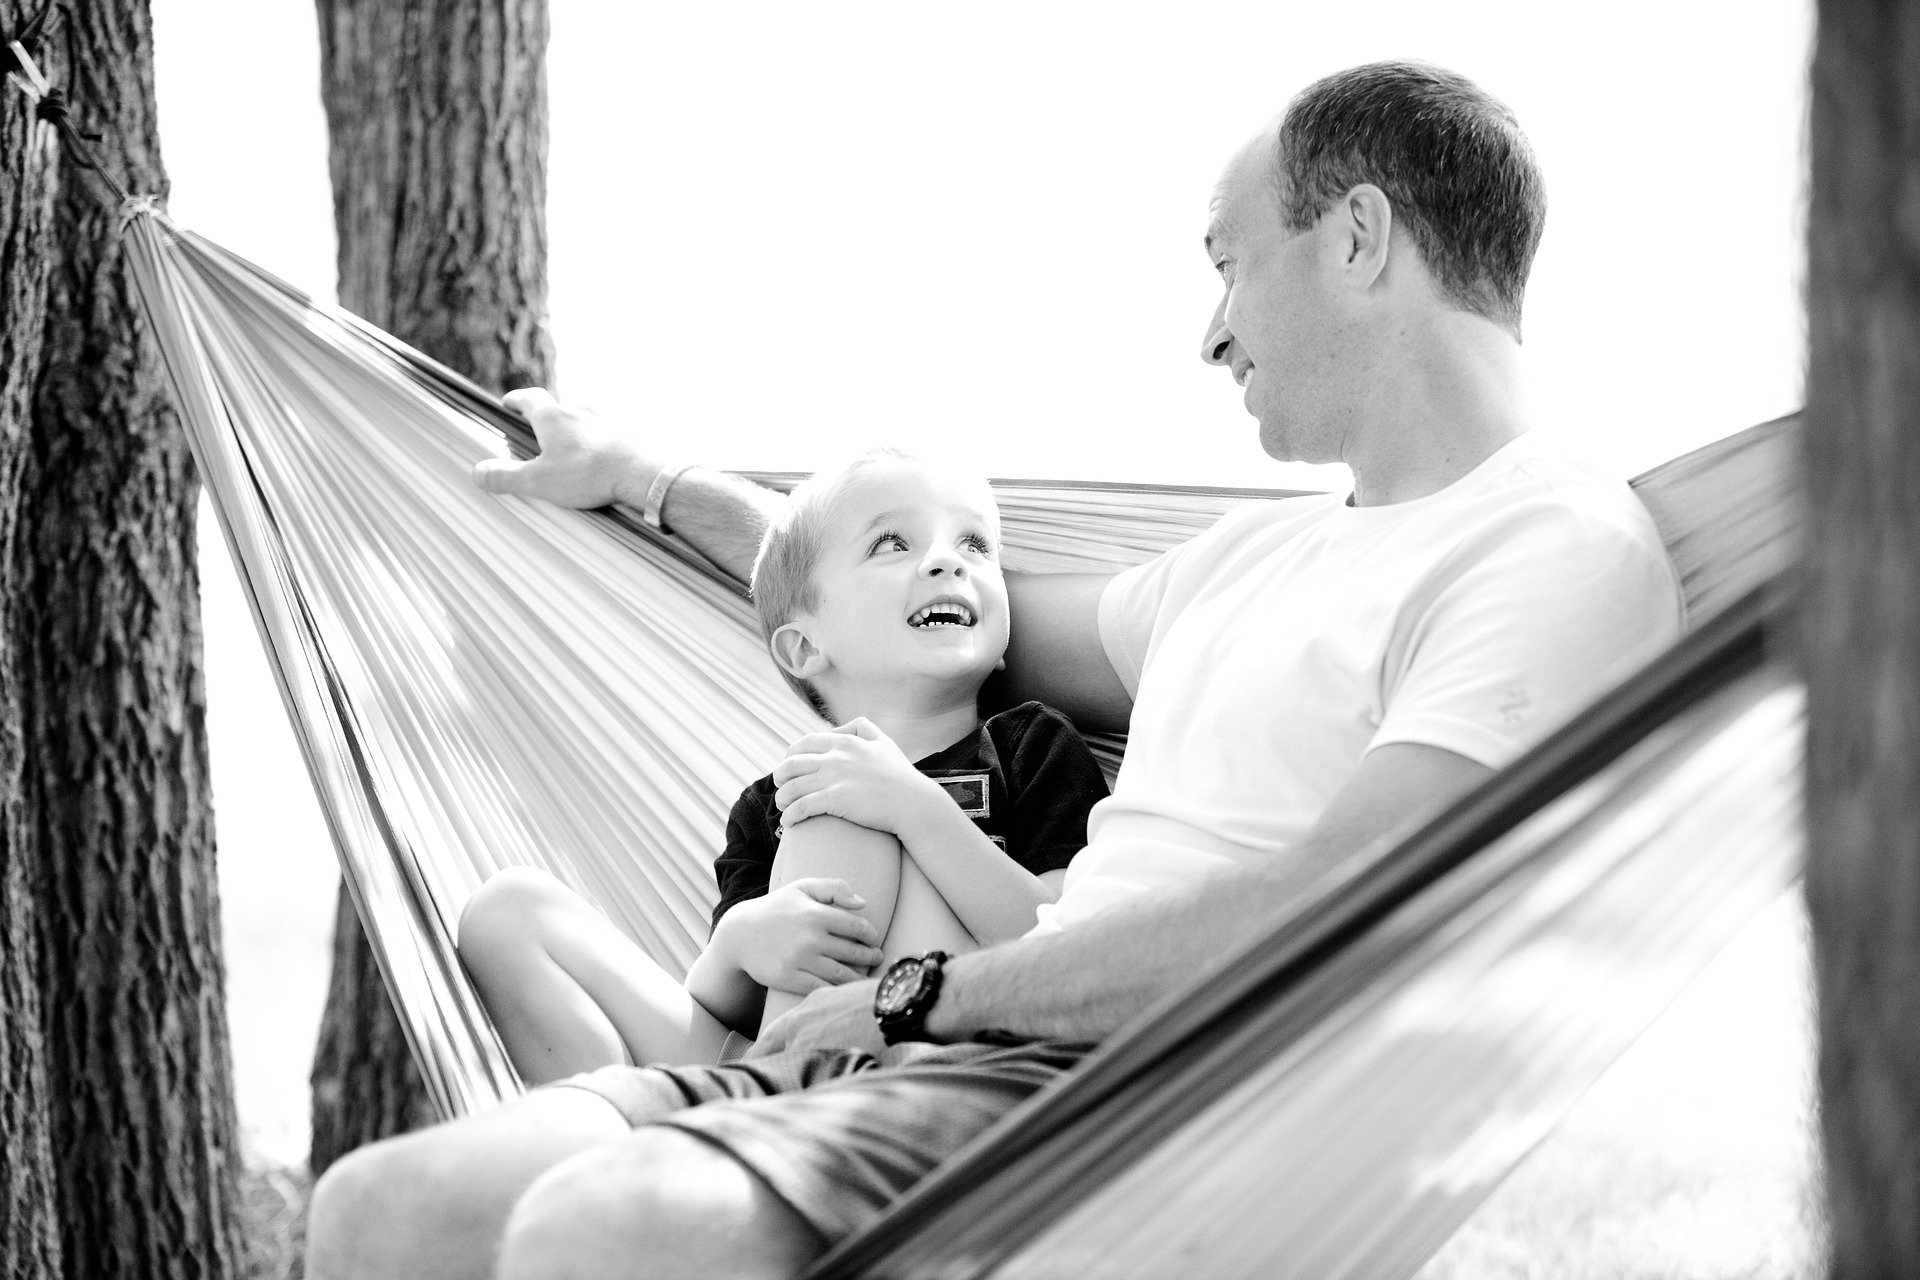 A father and his son sitting together in a hammock. | Source: Pixabay.